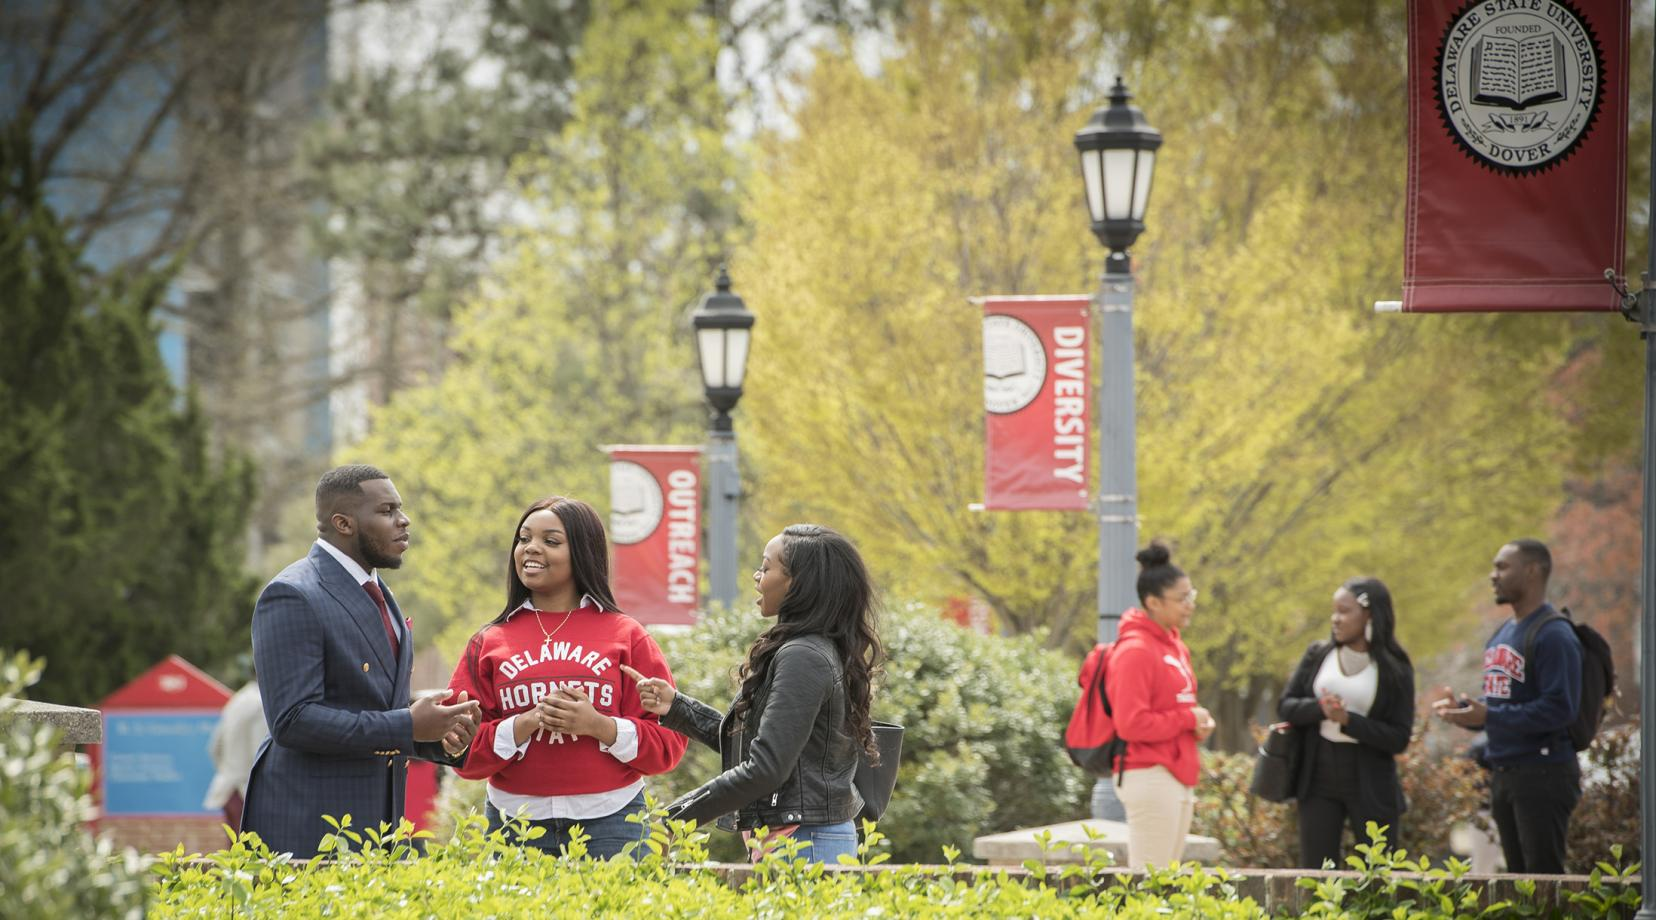 <p>With a total enrollment of 5,054 students for the 2019-2020 academic year, Delaware State University has broken all prior enrollment records for the ninth time in ten years.</p>